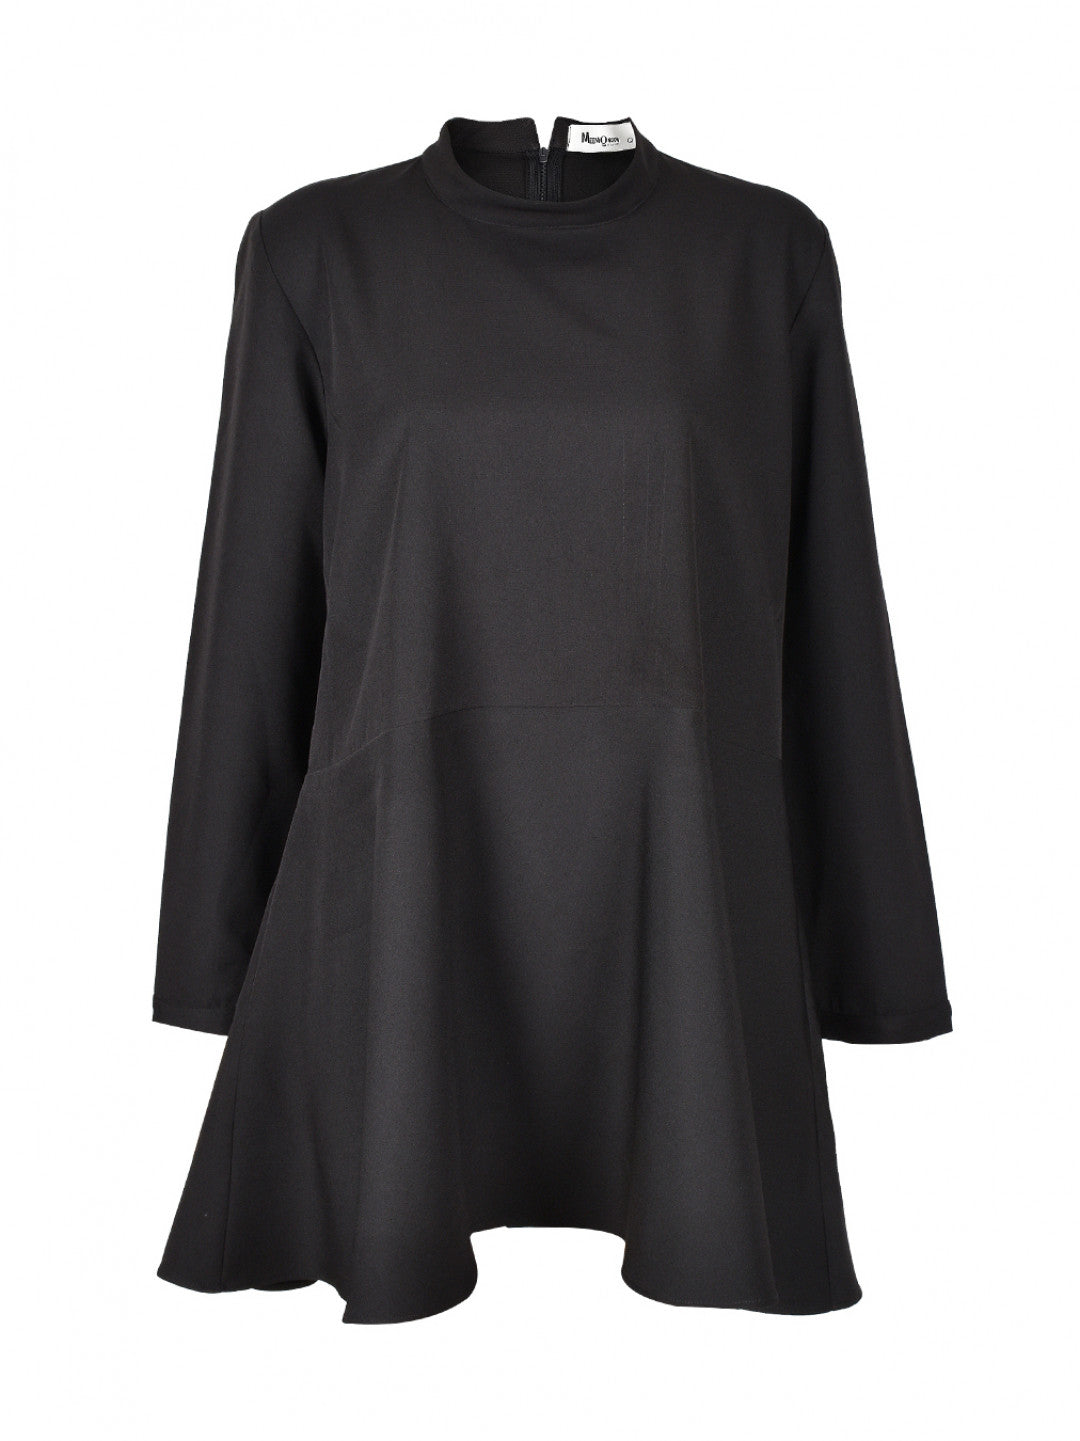 Savior Long Sleeves Blouse